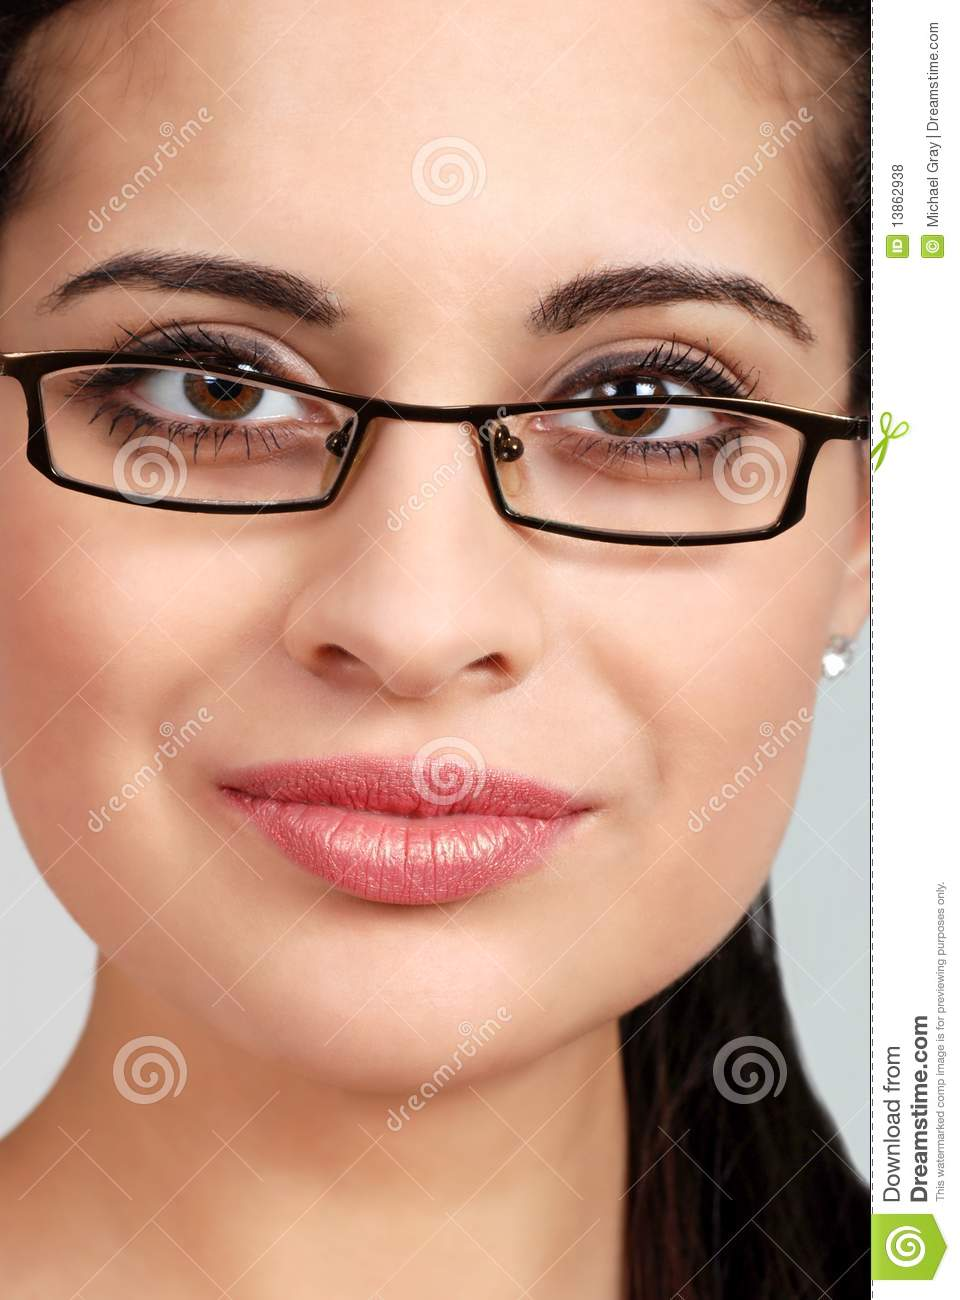 Headshot Spanish Woman Wearing Glasses Royalty Free Stock -3264